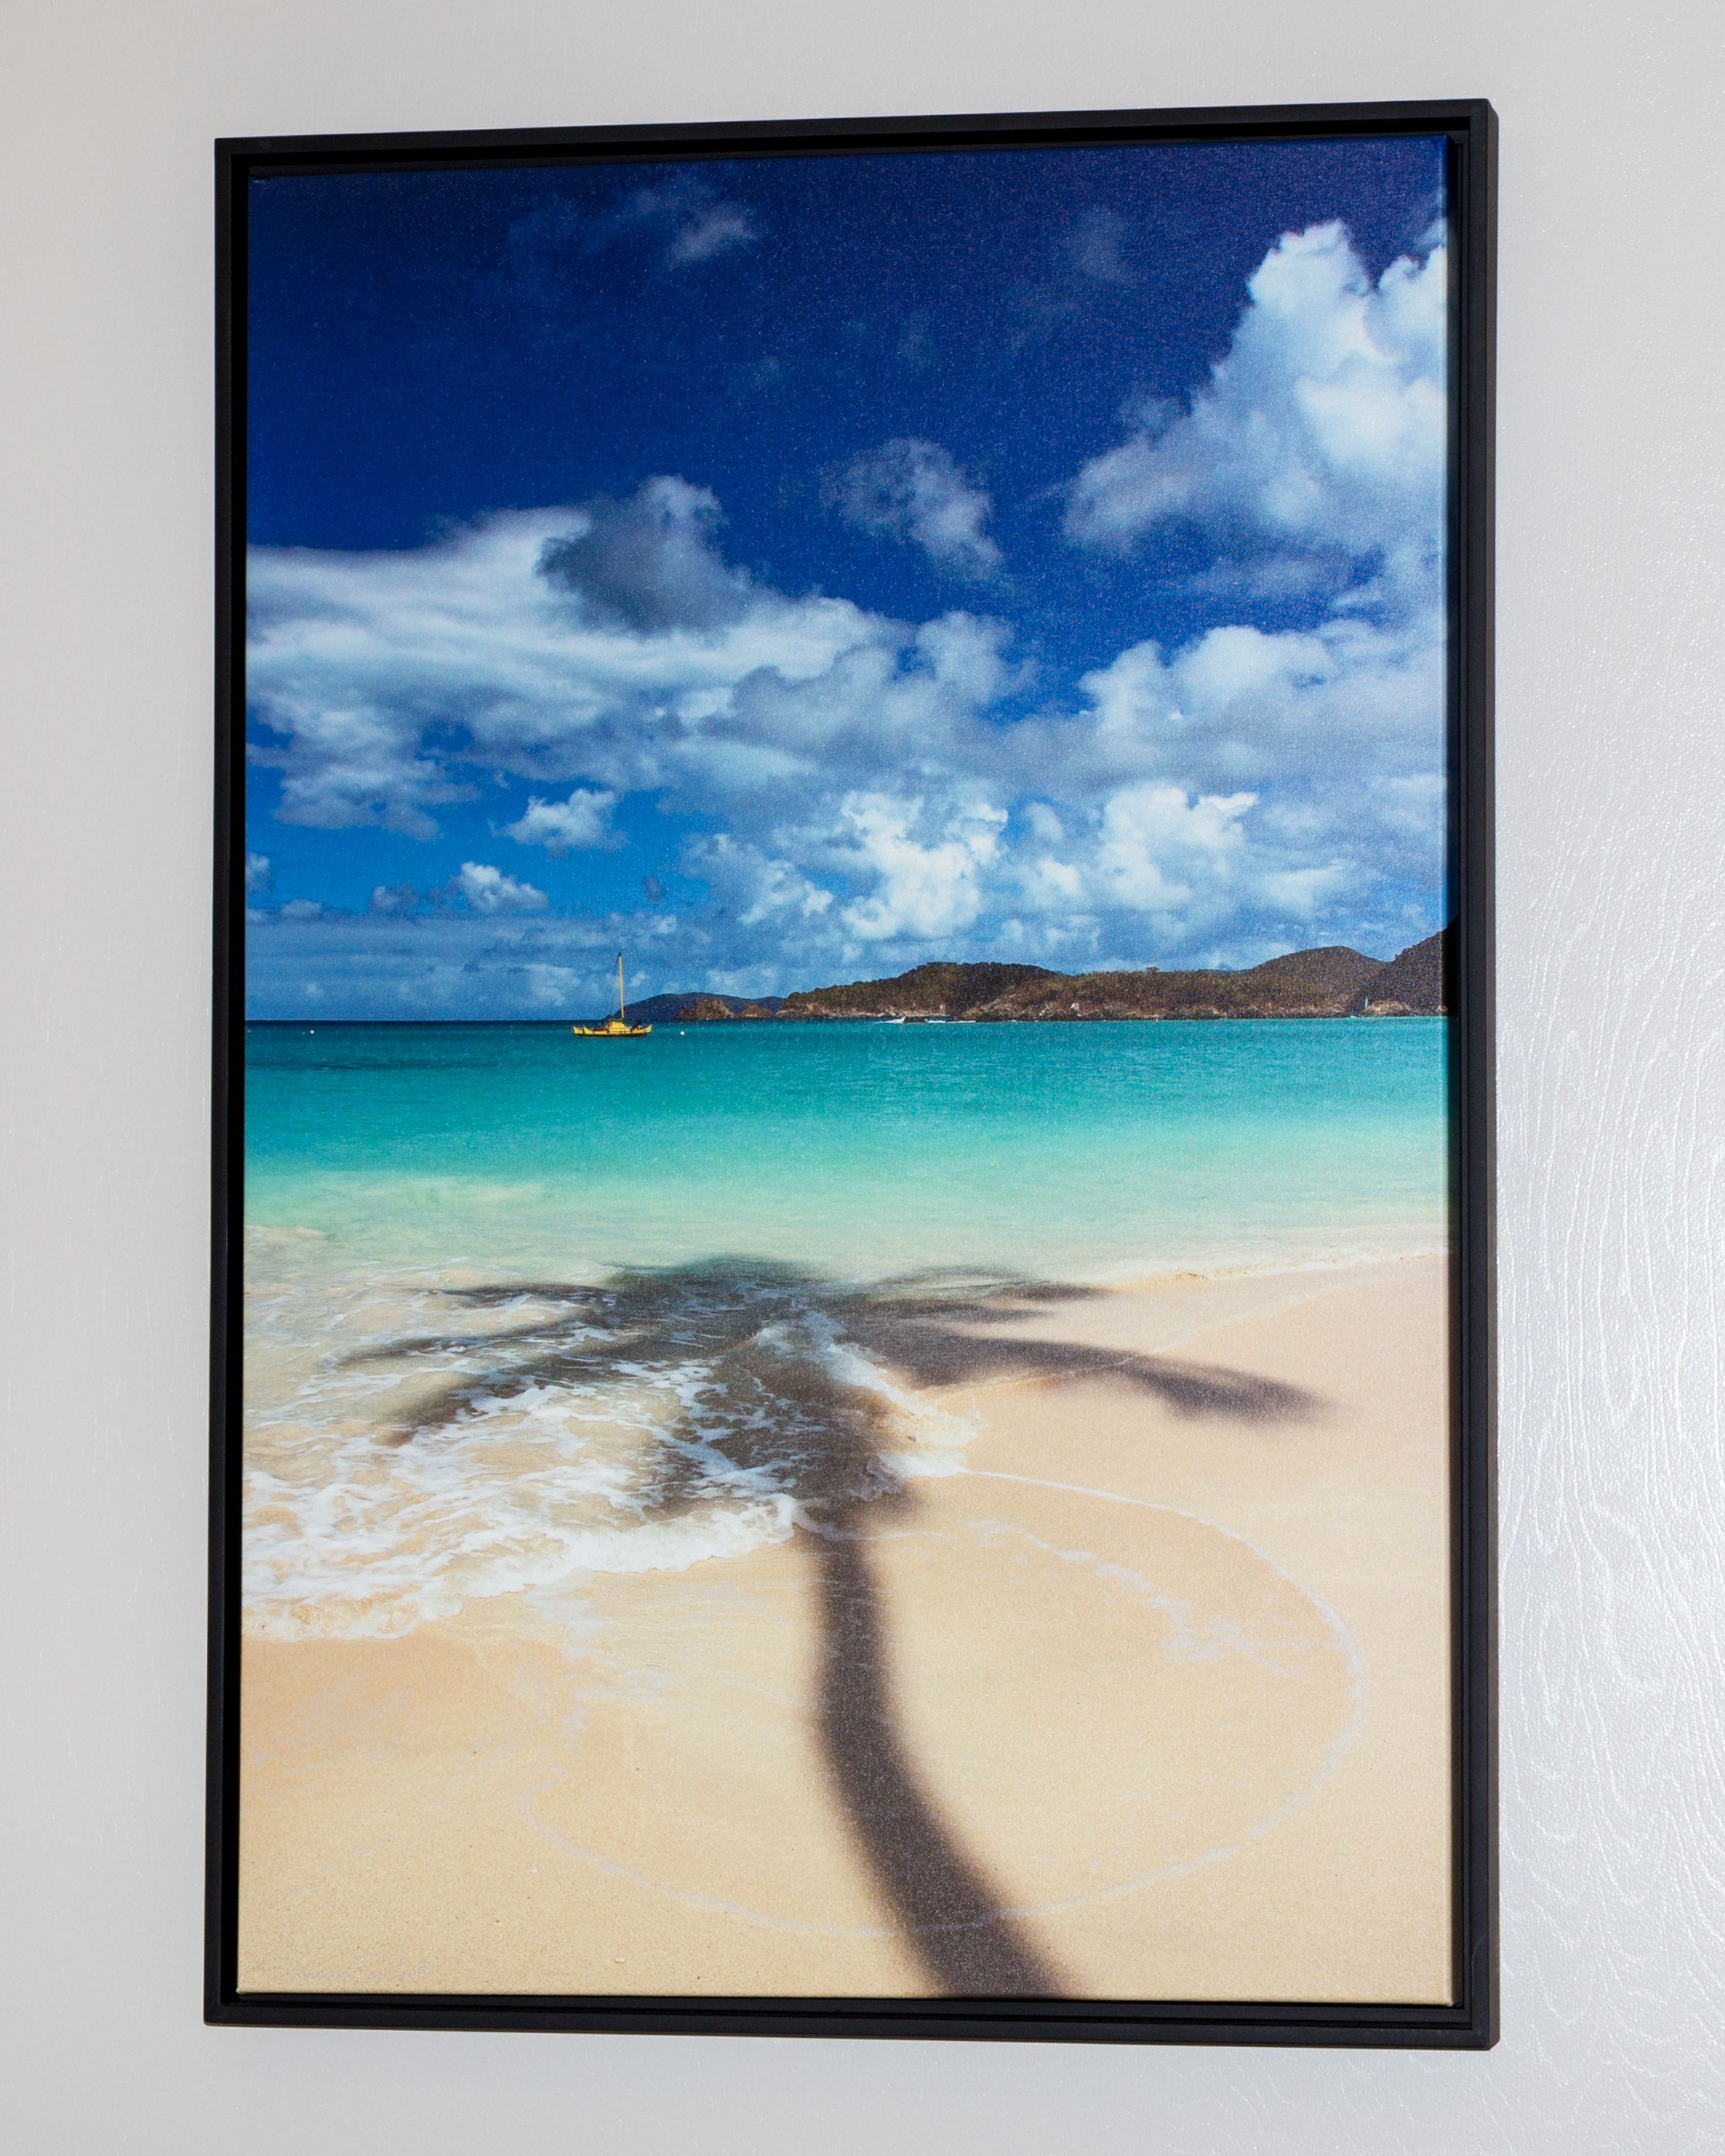 Palm Shadow, framed canvas $295.00 Floater Framed 24x36 Gallery ...